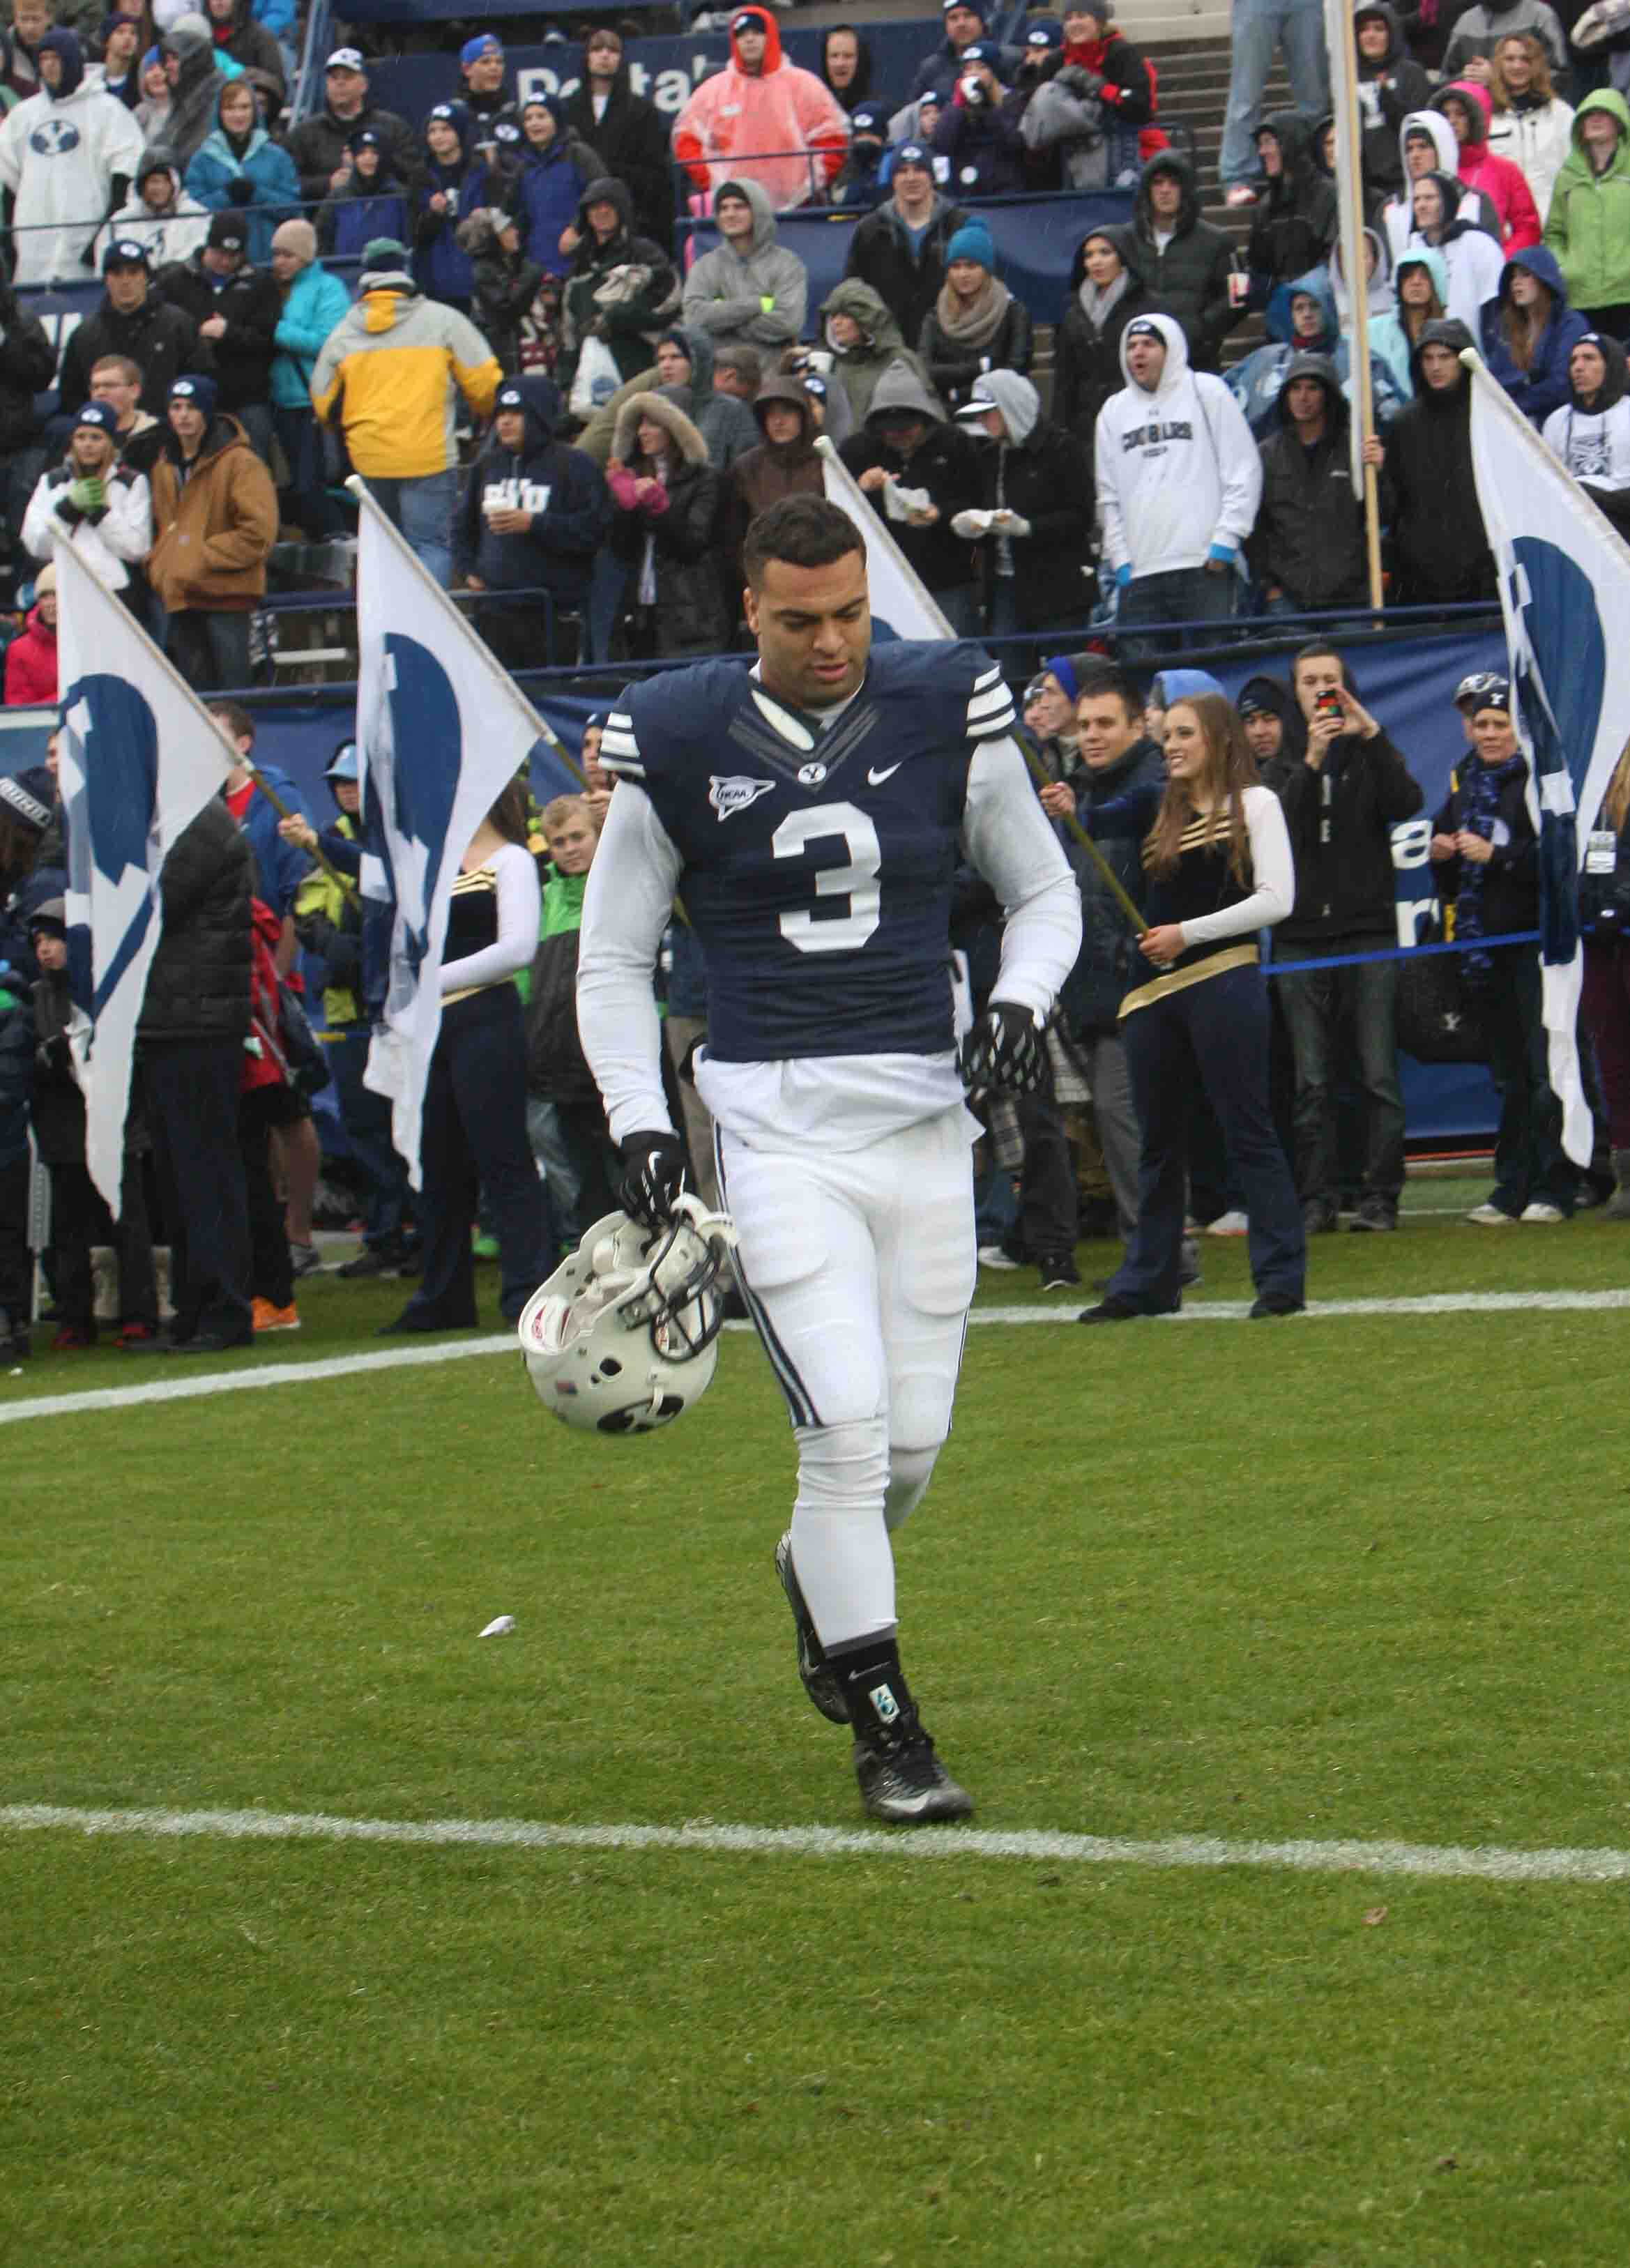 Kyle Van Noy walks onto the field during senior day celebrations. Photo by Ari Davis.